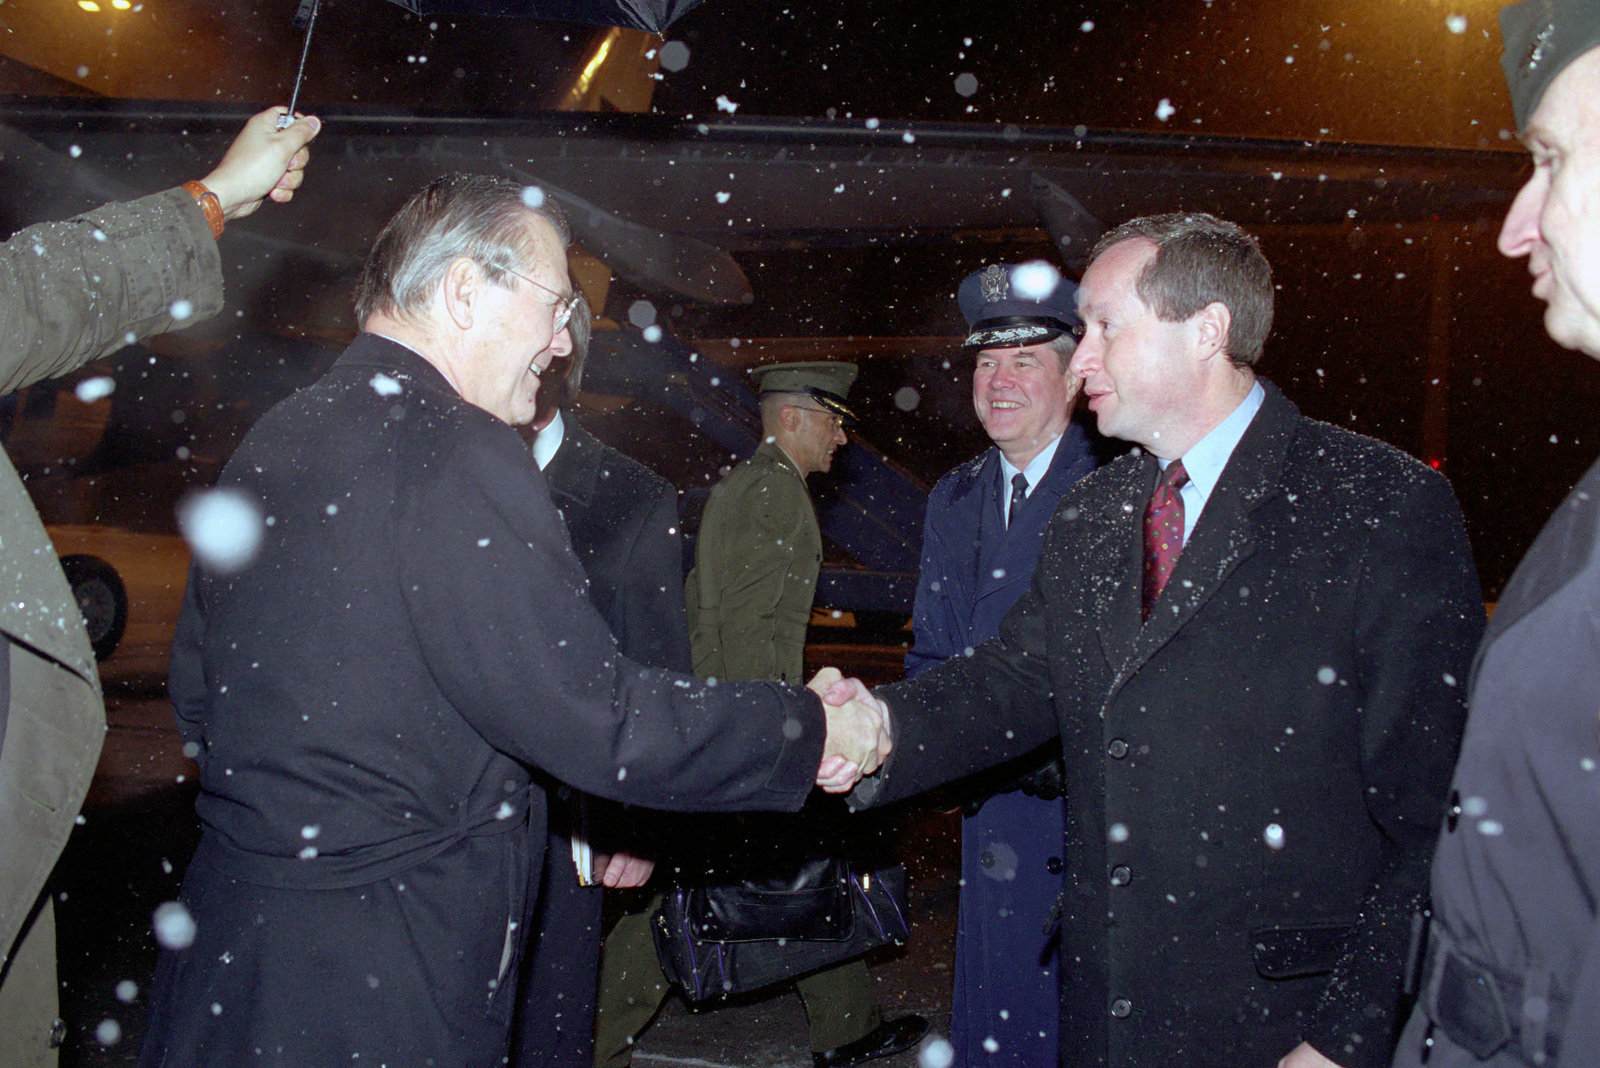 The Honorable Donald H. Rumsfeld (left), U.S. Secretary of Defense (SECDEF), arrives at Munich International Airport, Feb. 3, 2001, and is greeted by Terry Snell, Charge Affairs, U.S. Embassy, Berlin, U.S. Air Force GEN. Joseph Ralston, Consulate, Munich, and U.S. Army COL. Eric Hammersen, Defense Attache'to the U.S. Embassy, Berlin.  OSD Package 010203-D-2987S-001-030 (PHOTO by Helene C. Stikkel) (Released)